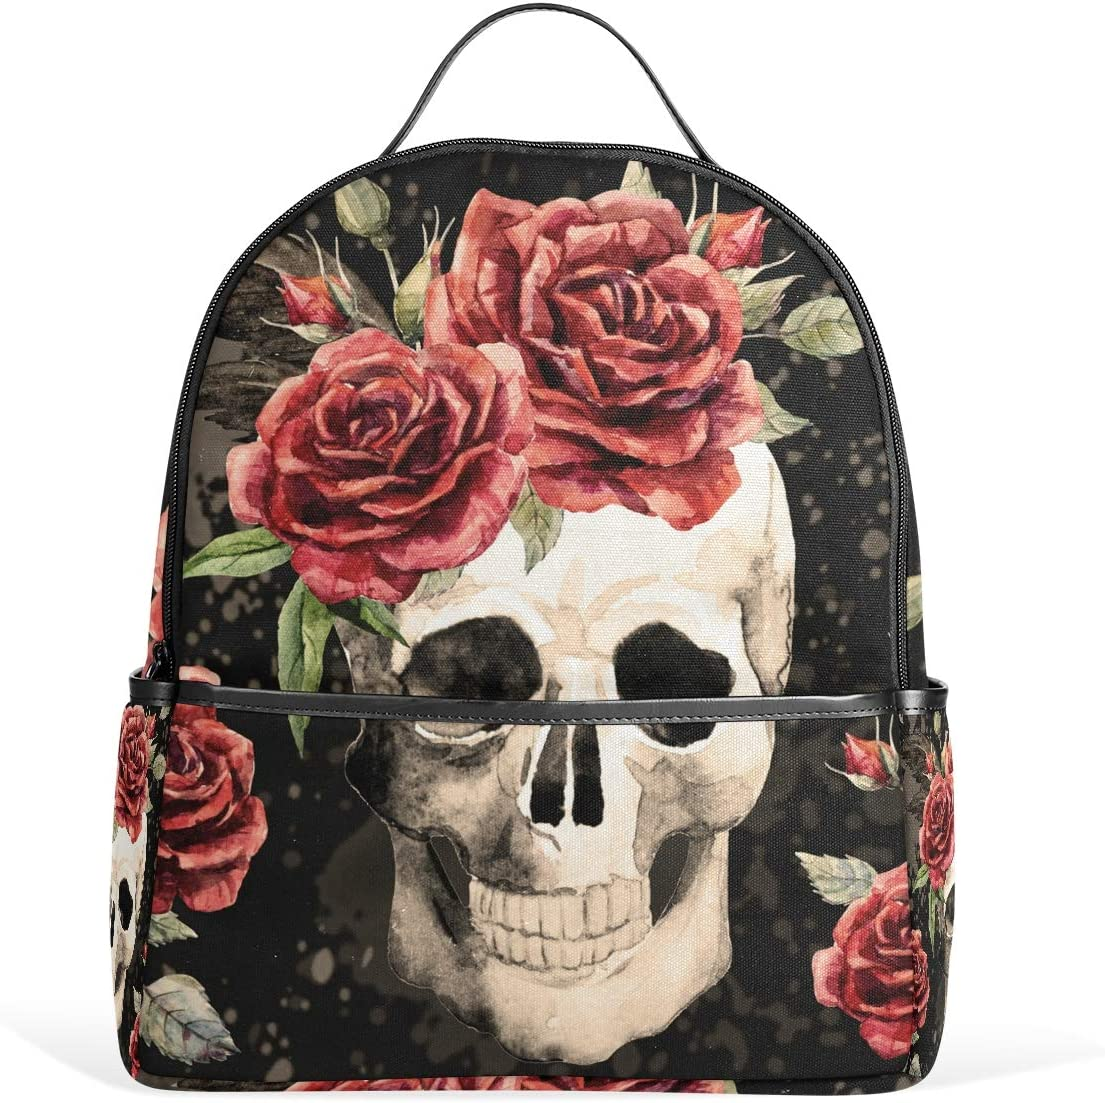 XMCL Casual Bag,Watercolor Gothic Skull Rose Shoulder Zipper Backpack Hiking Travel Daypack College Bookbag for Woman